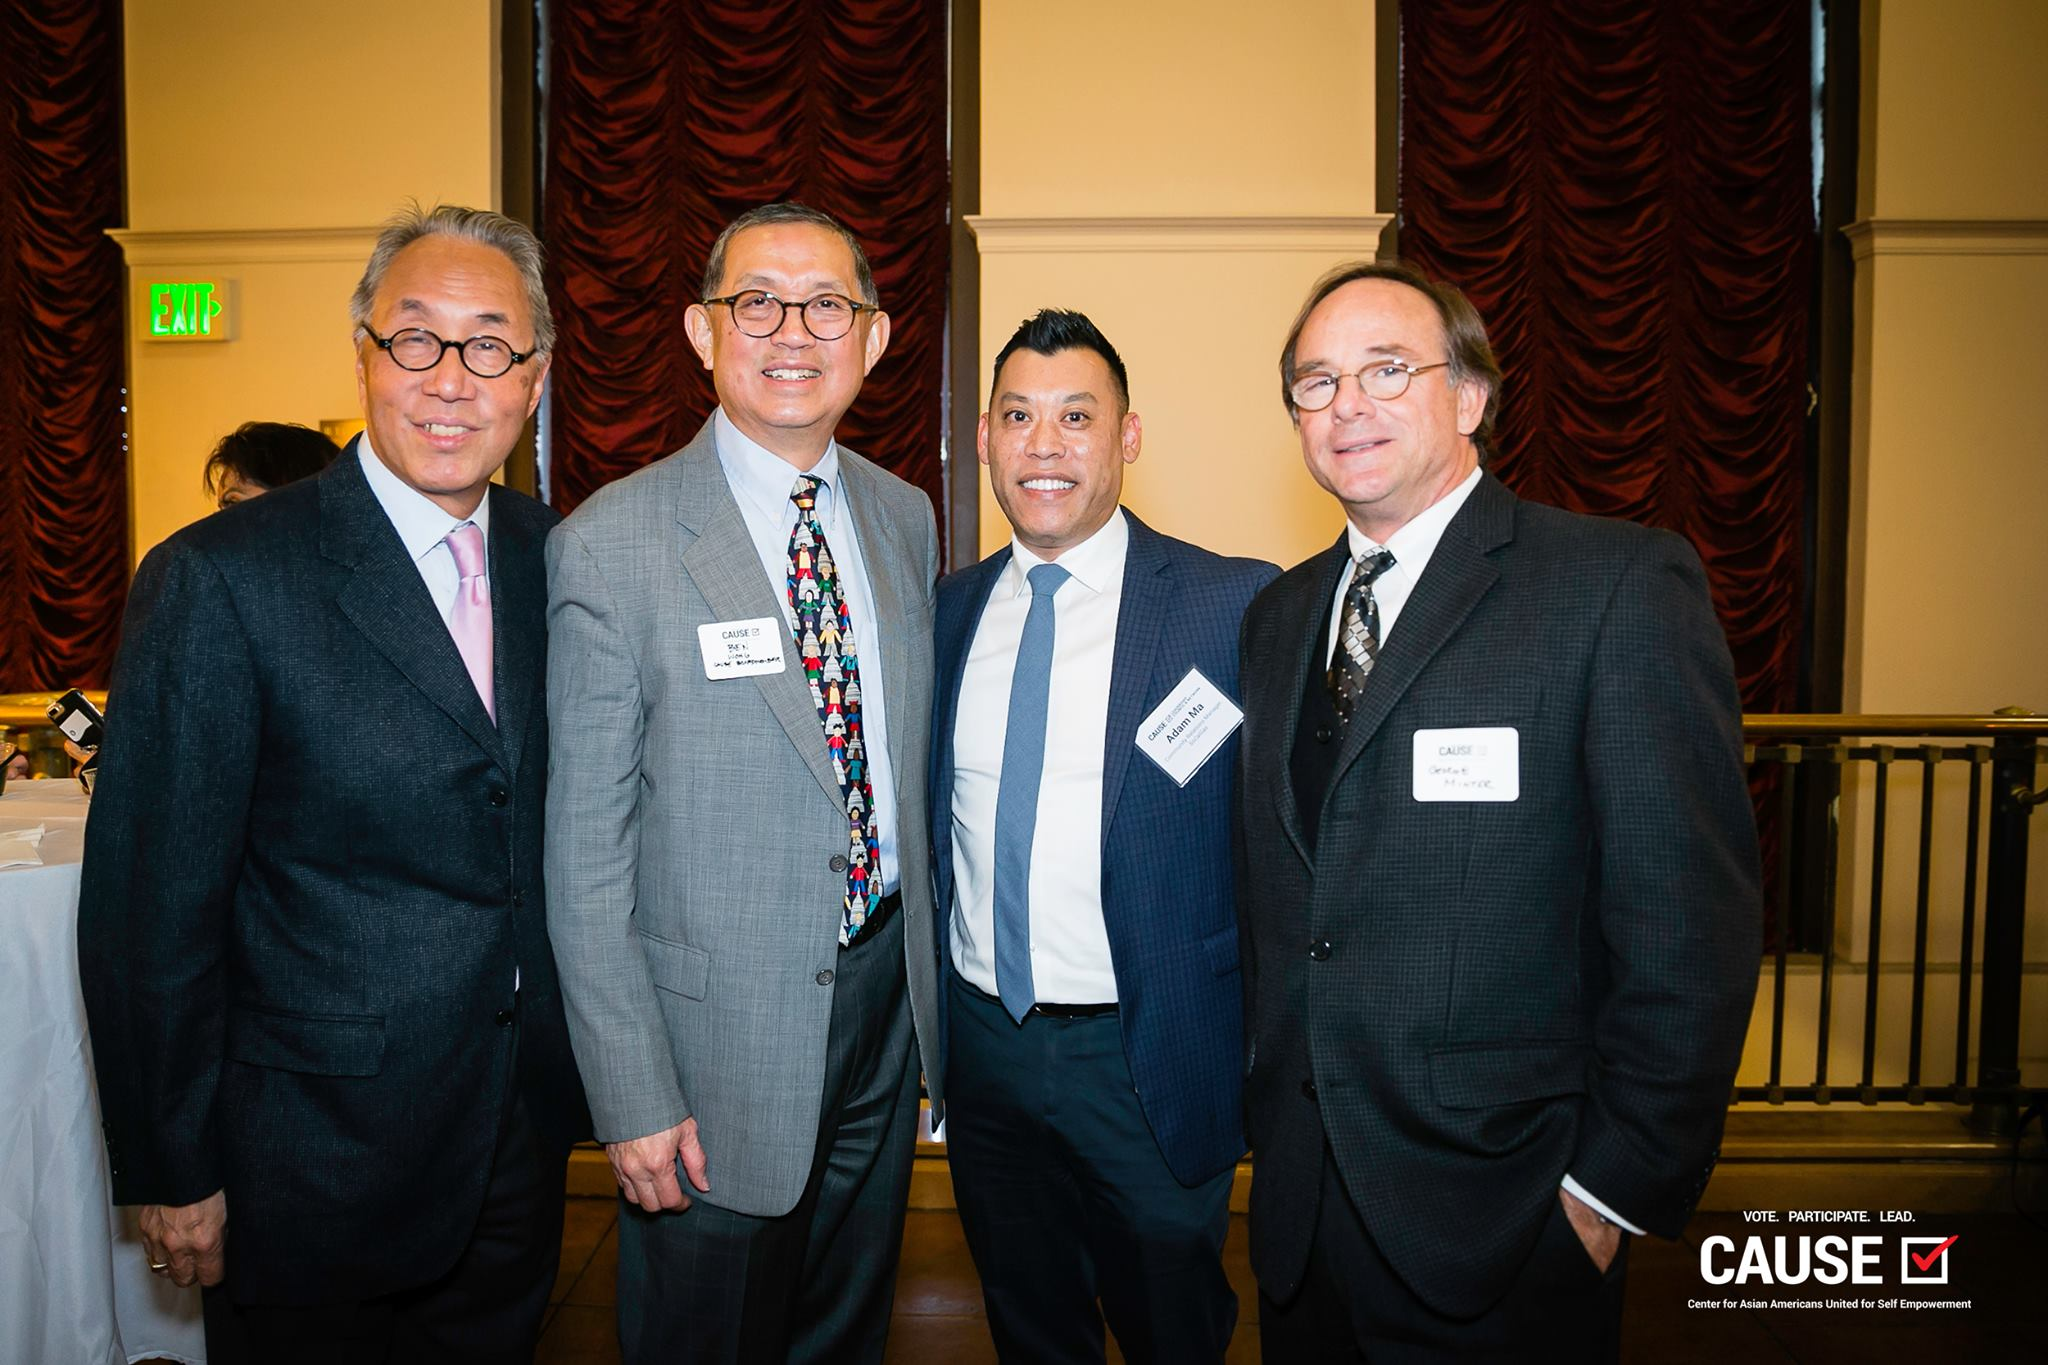 Michael Woo, Ben Wong, and Adam Ma at the 2019 CAUSE Leadership Network Reception